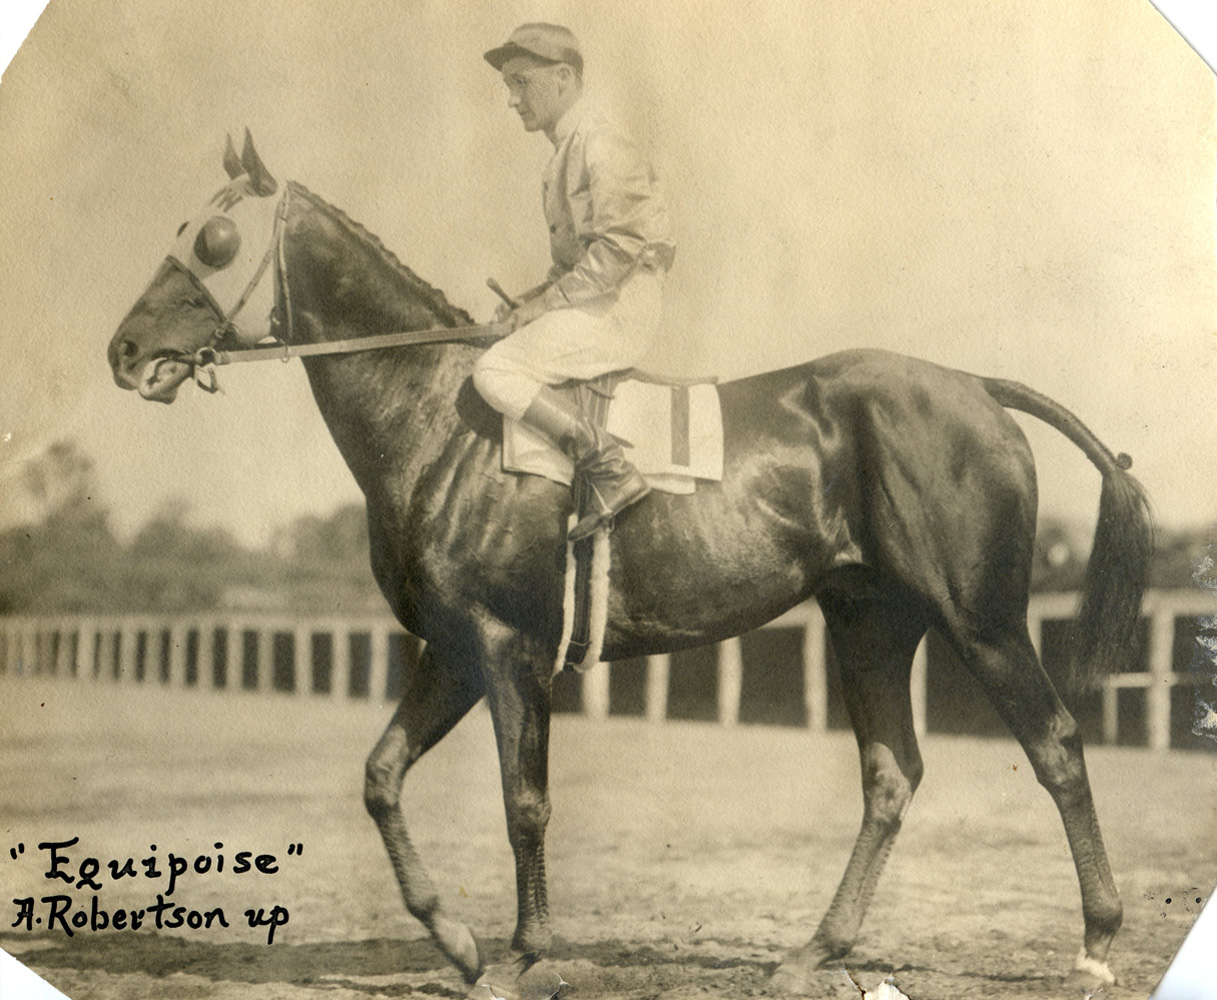 Equipoise with Alfred Robertson up (C.C. Cook/Museum Collection)